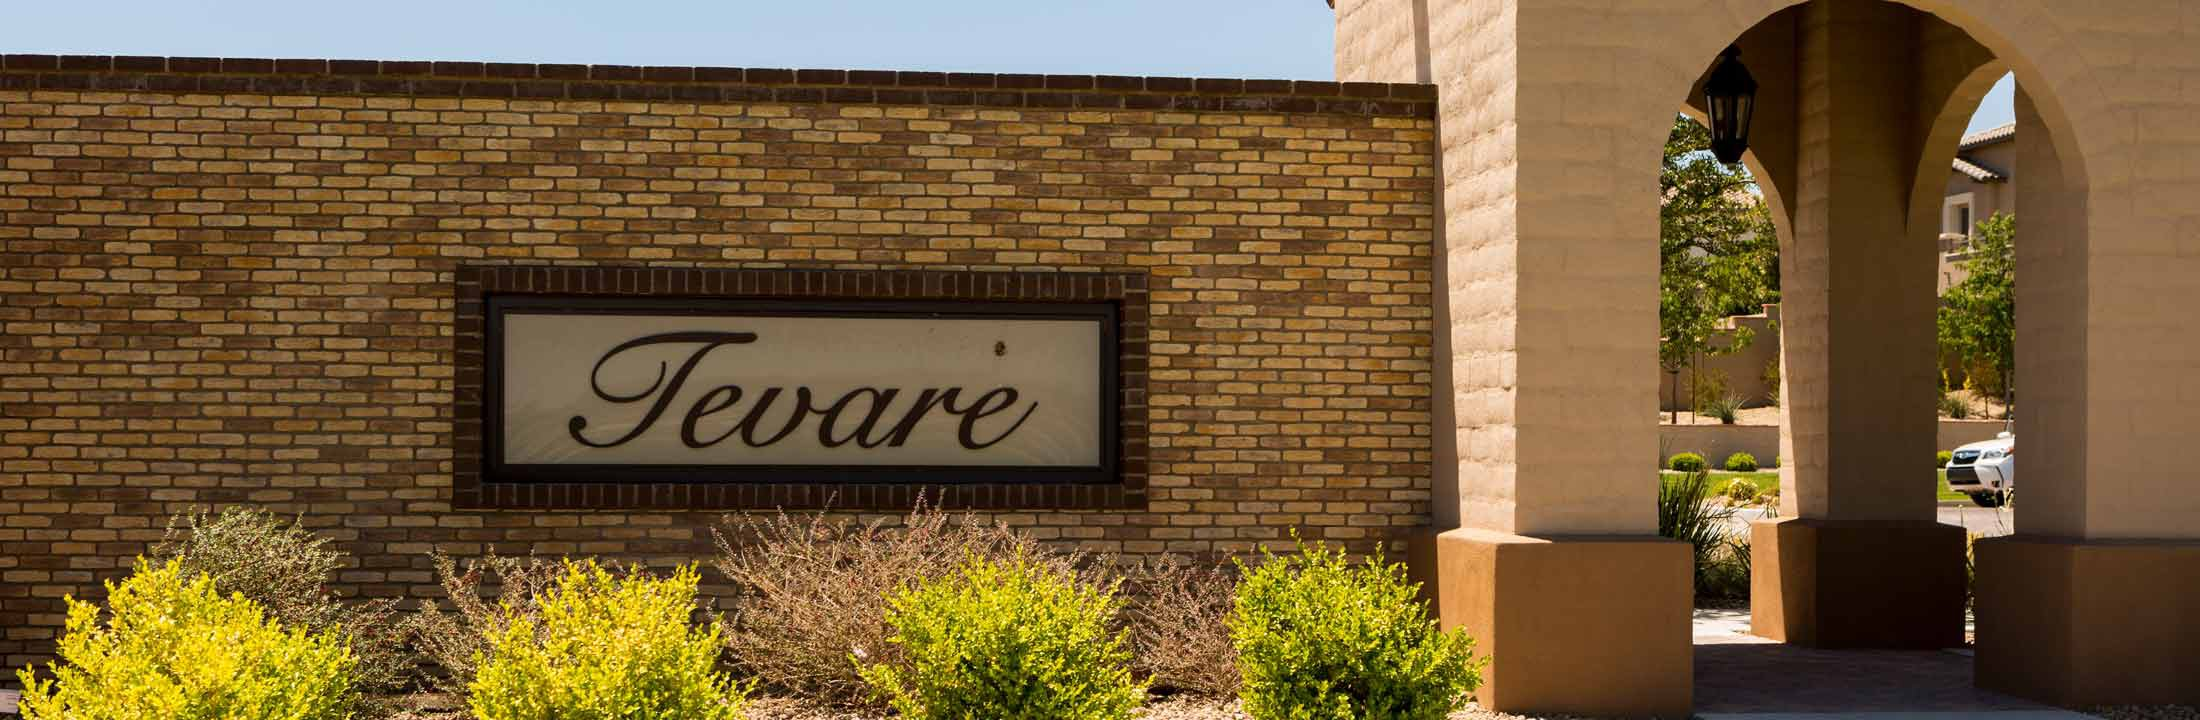 Tevare-homes-for-sale-las-vegas